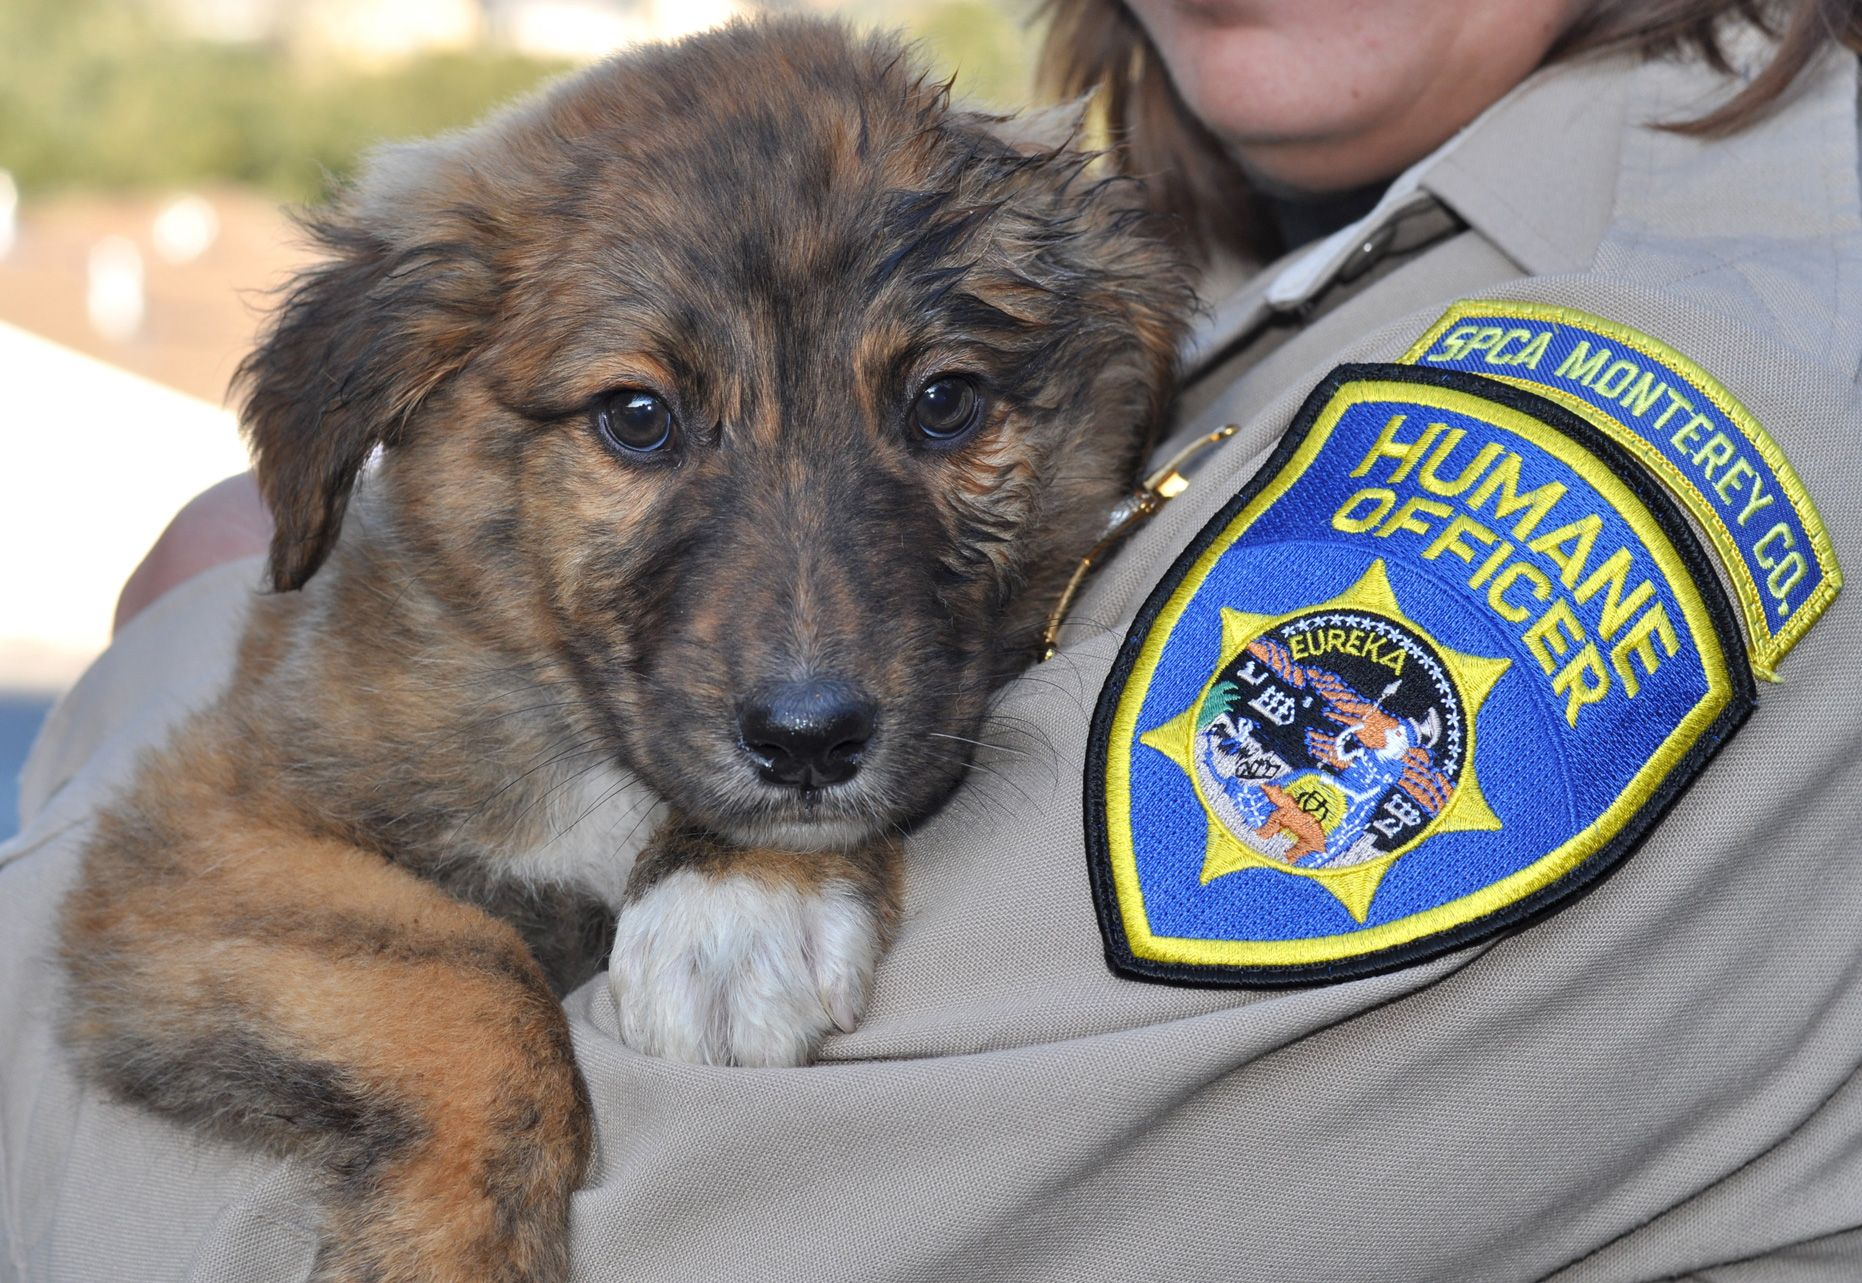 This adorable puppy was abandoned at a plastics recycling